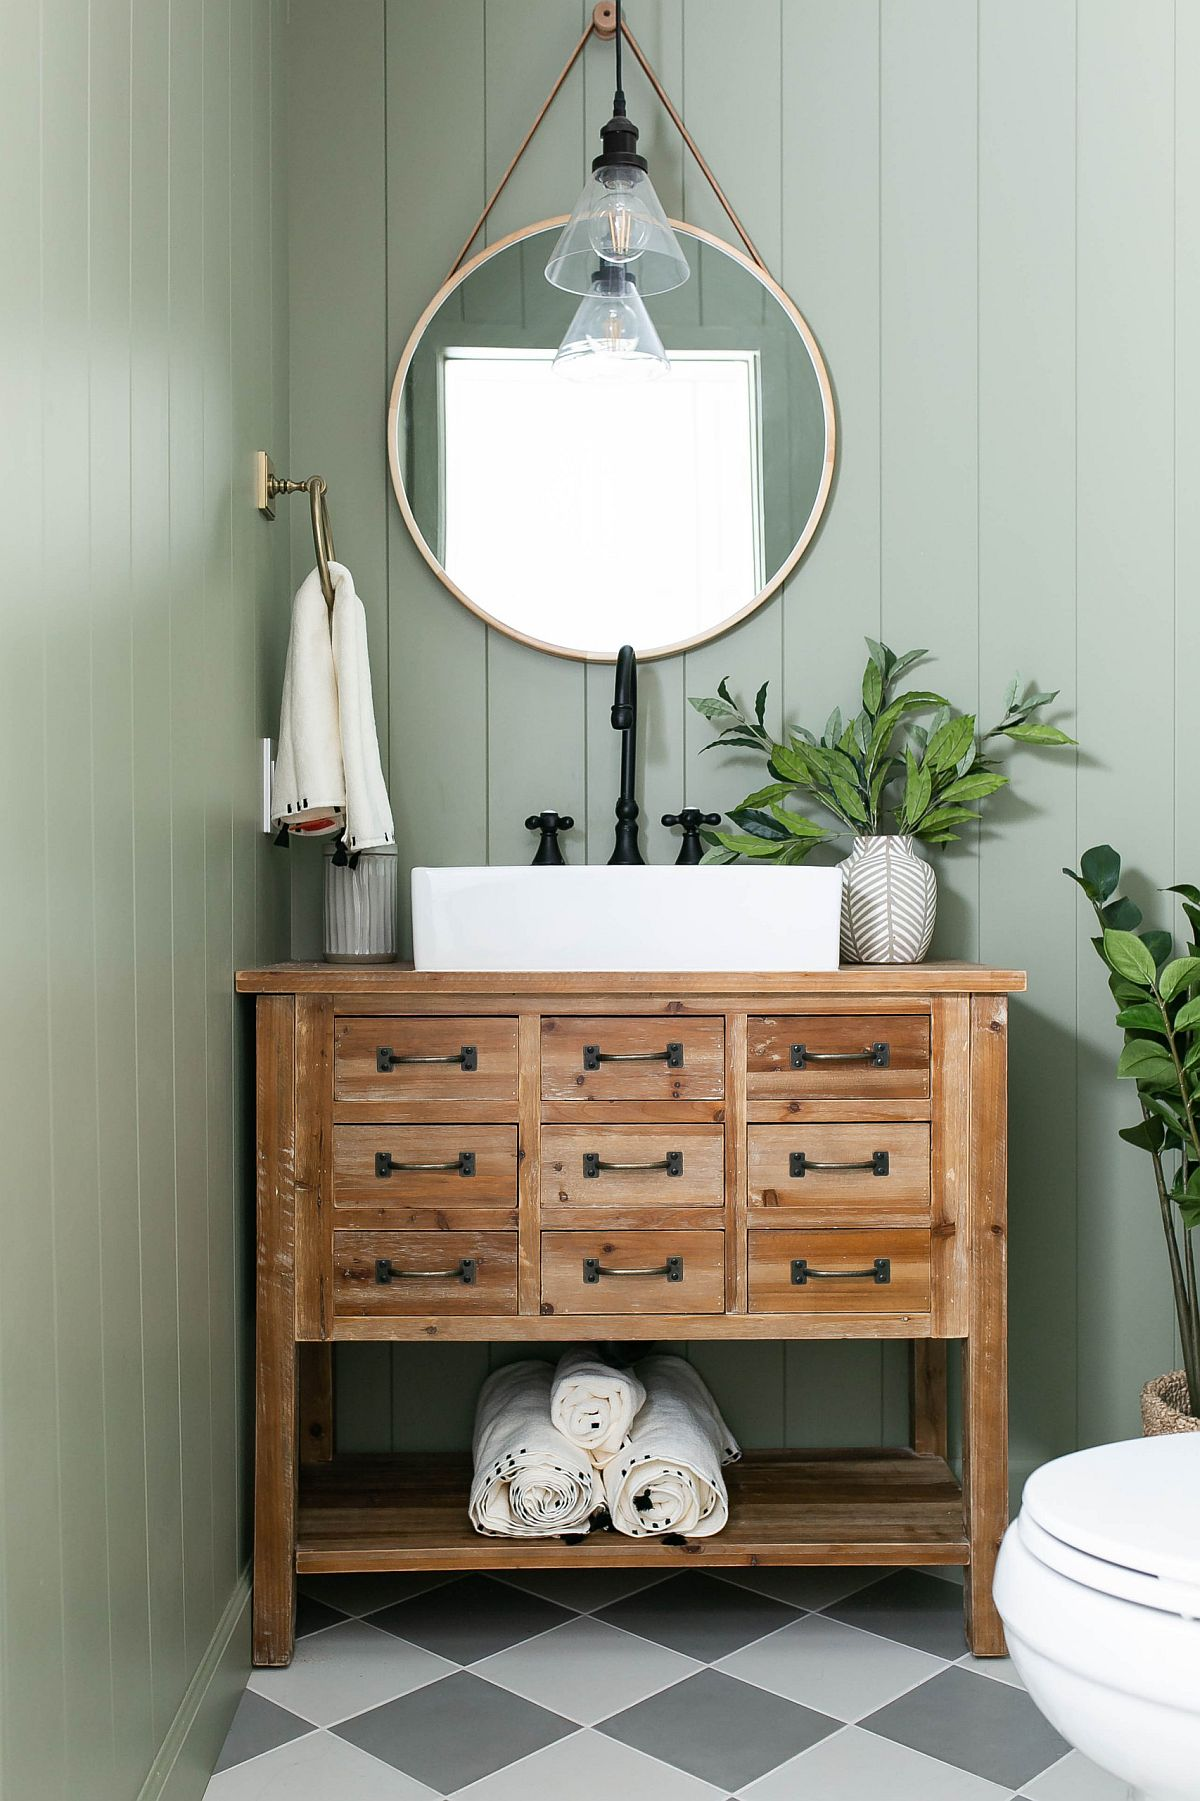 Finding the right pastel green for a pleasant powder room